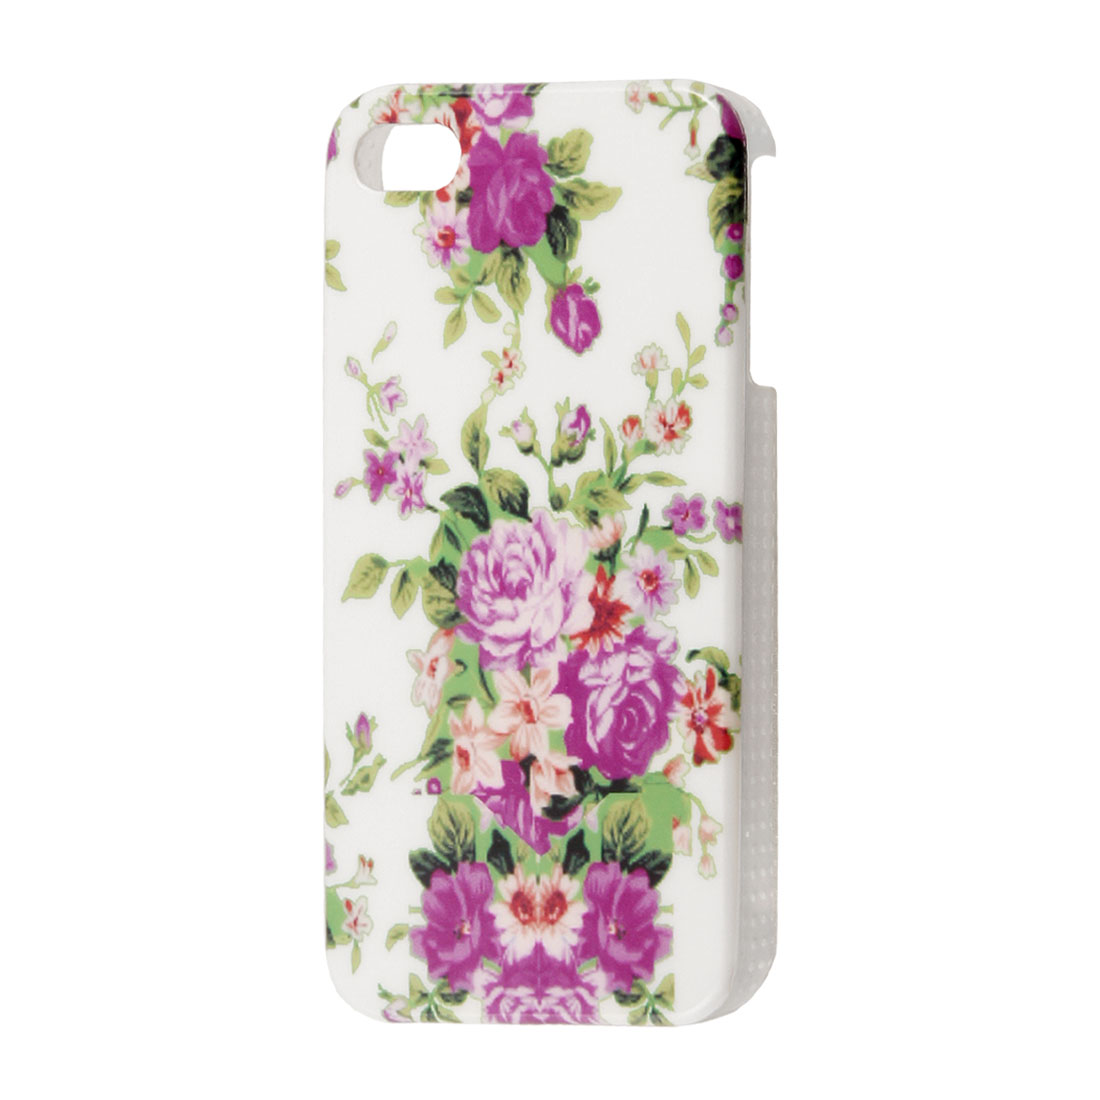 Flowers Leaves Background White IMD Plastic Back Cover for iPhone 4 4S 4GS